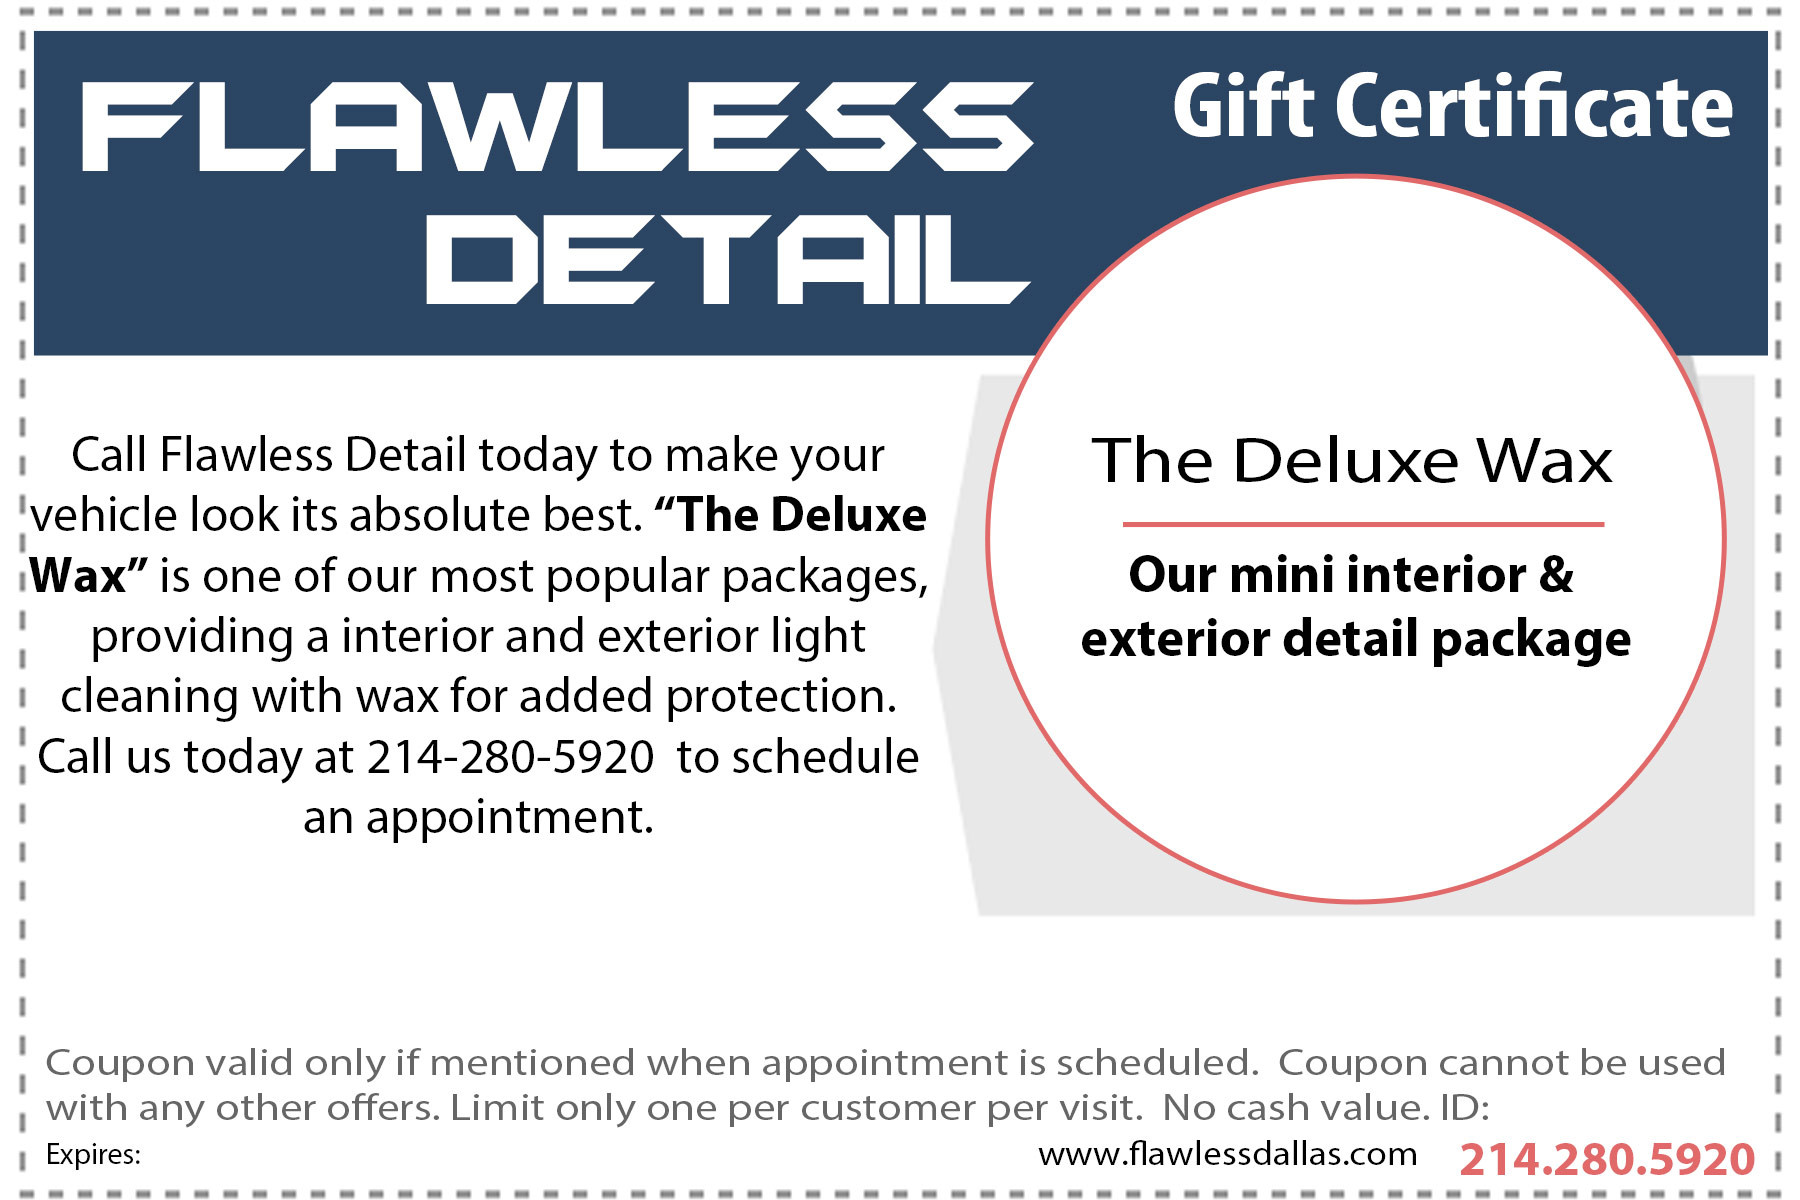 Wash and Wax Gift Certificate